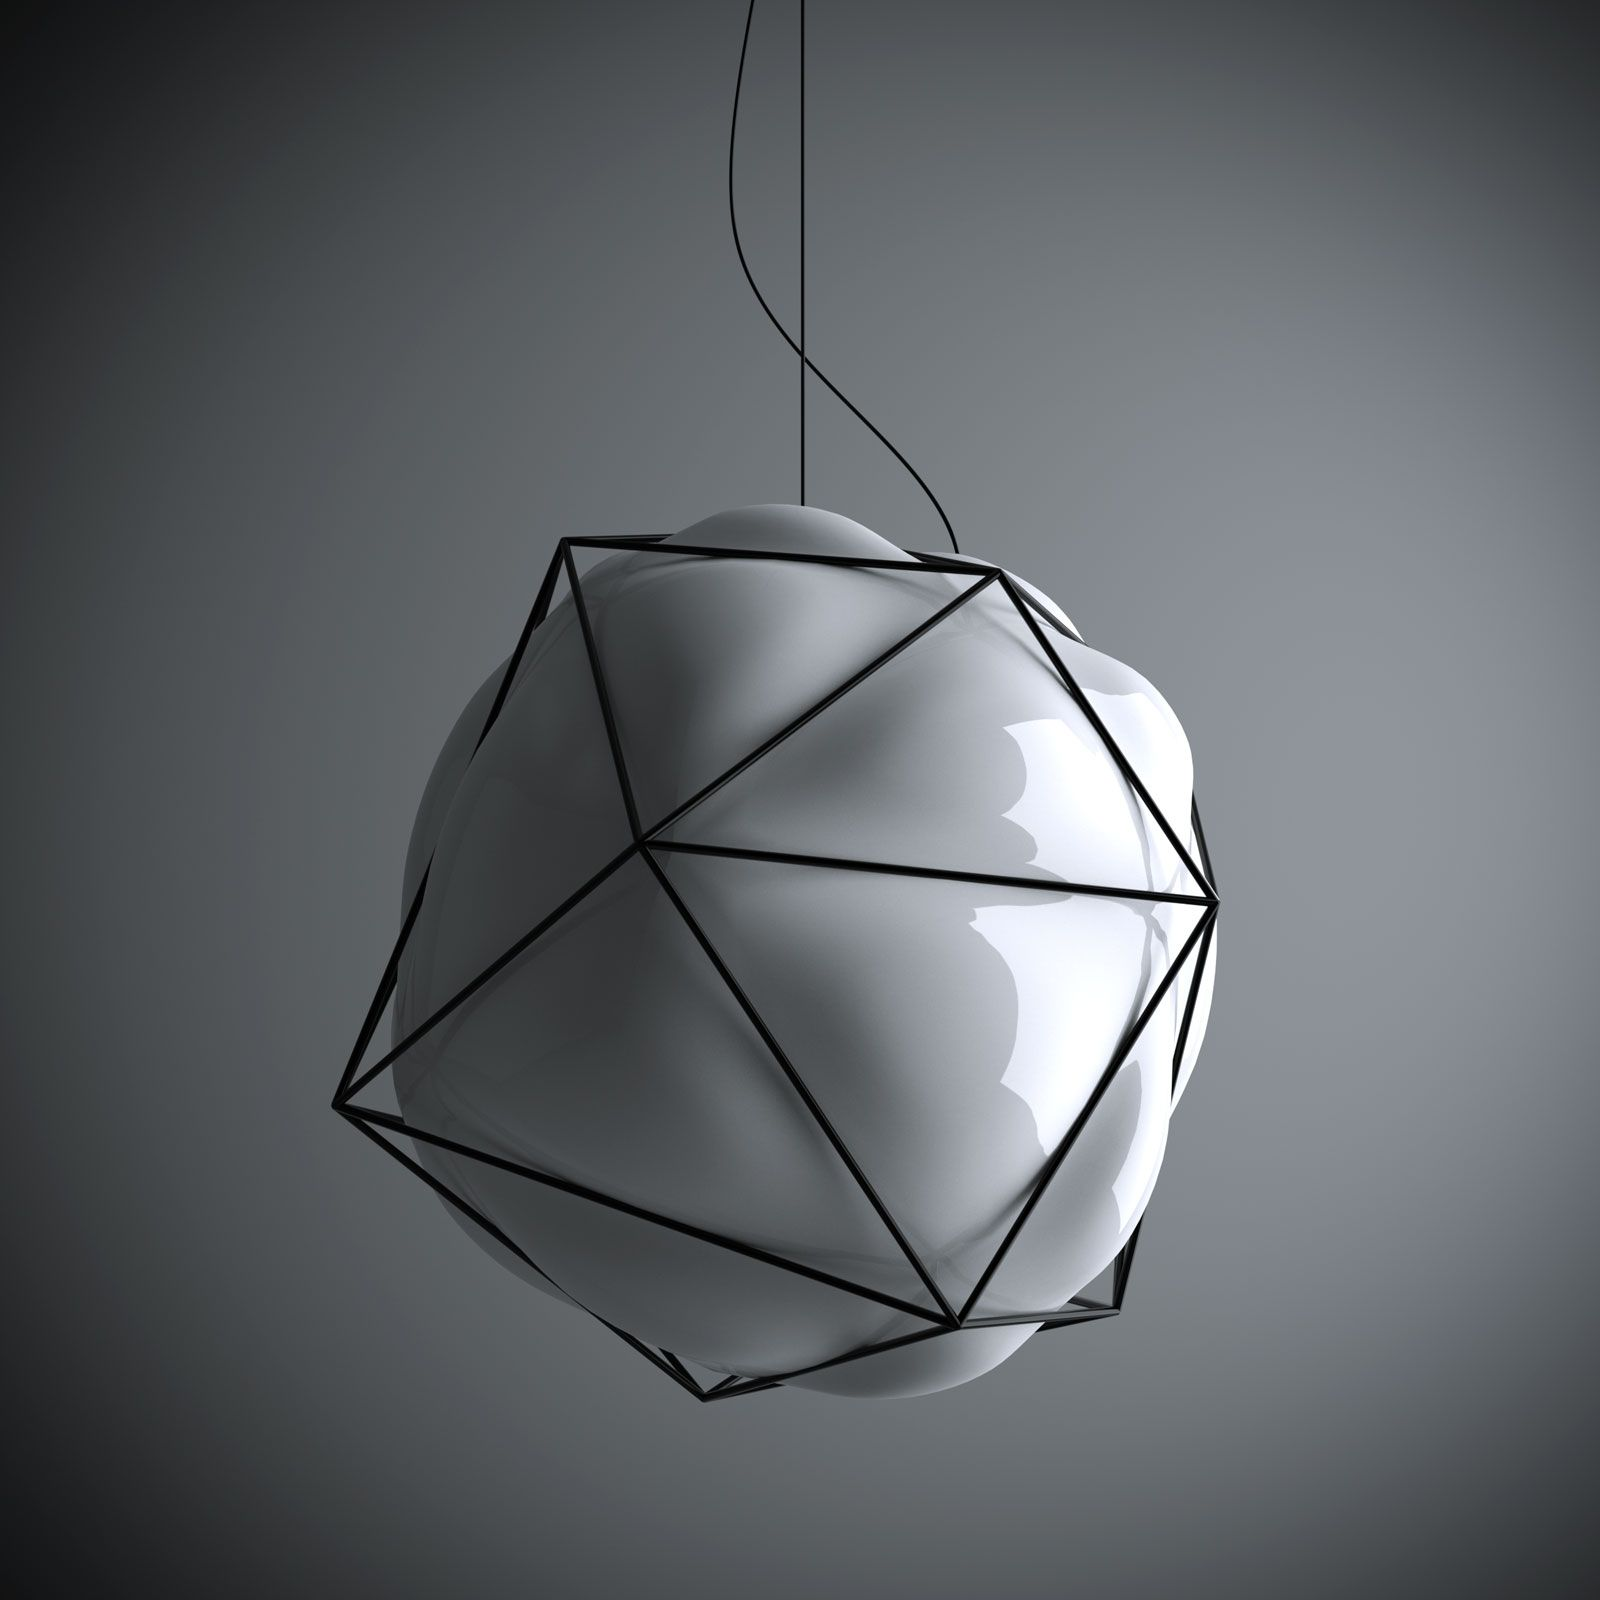 Valerio Sommella and Alberto Saggia; Enameled Metal and Blown Glass 'Semai' Ceiling Light, 2009.